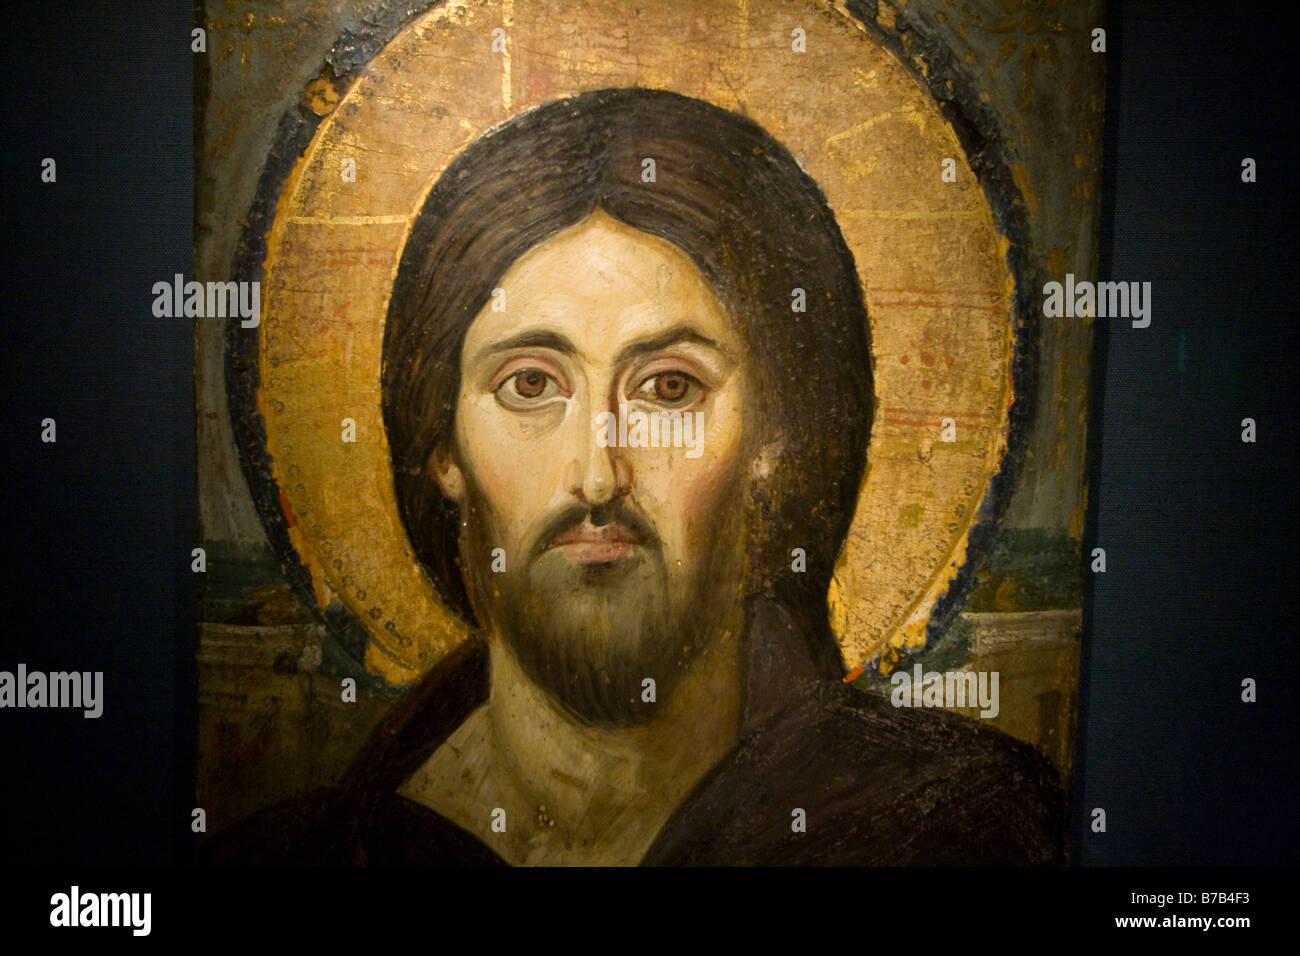 Painting of Jesus Christ in the Sacred Sacristy Museum in St Katherine Monastery on the Sinai Peninsula in Egypt - Stock Image